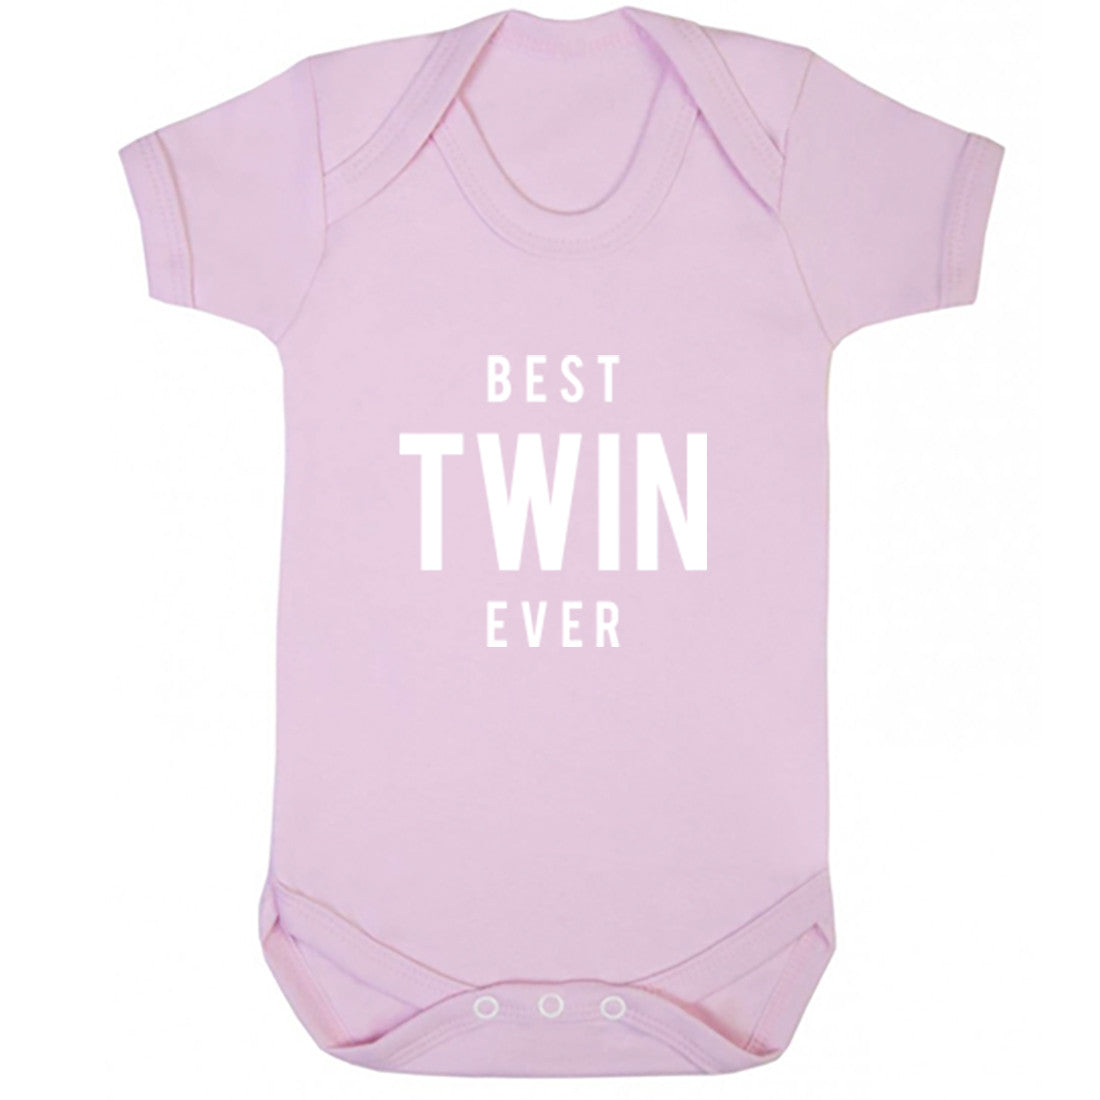 Best Twin Ever Baby Vest K1491